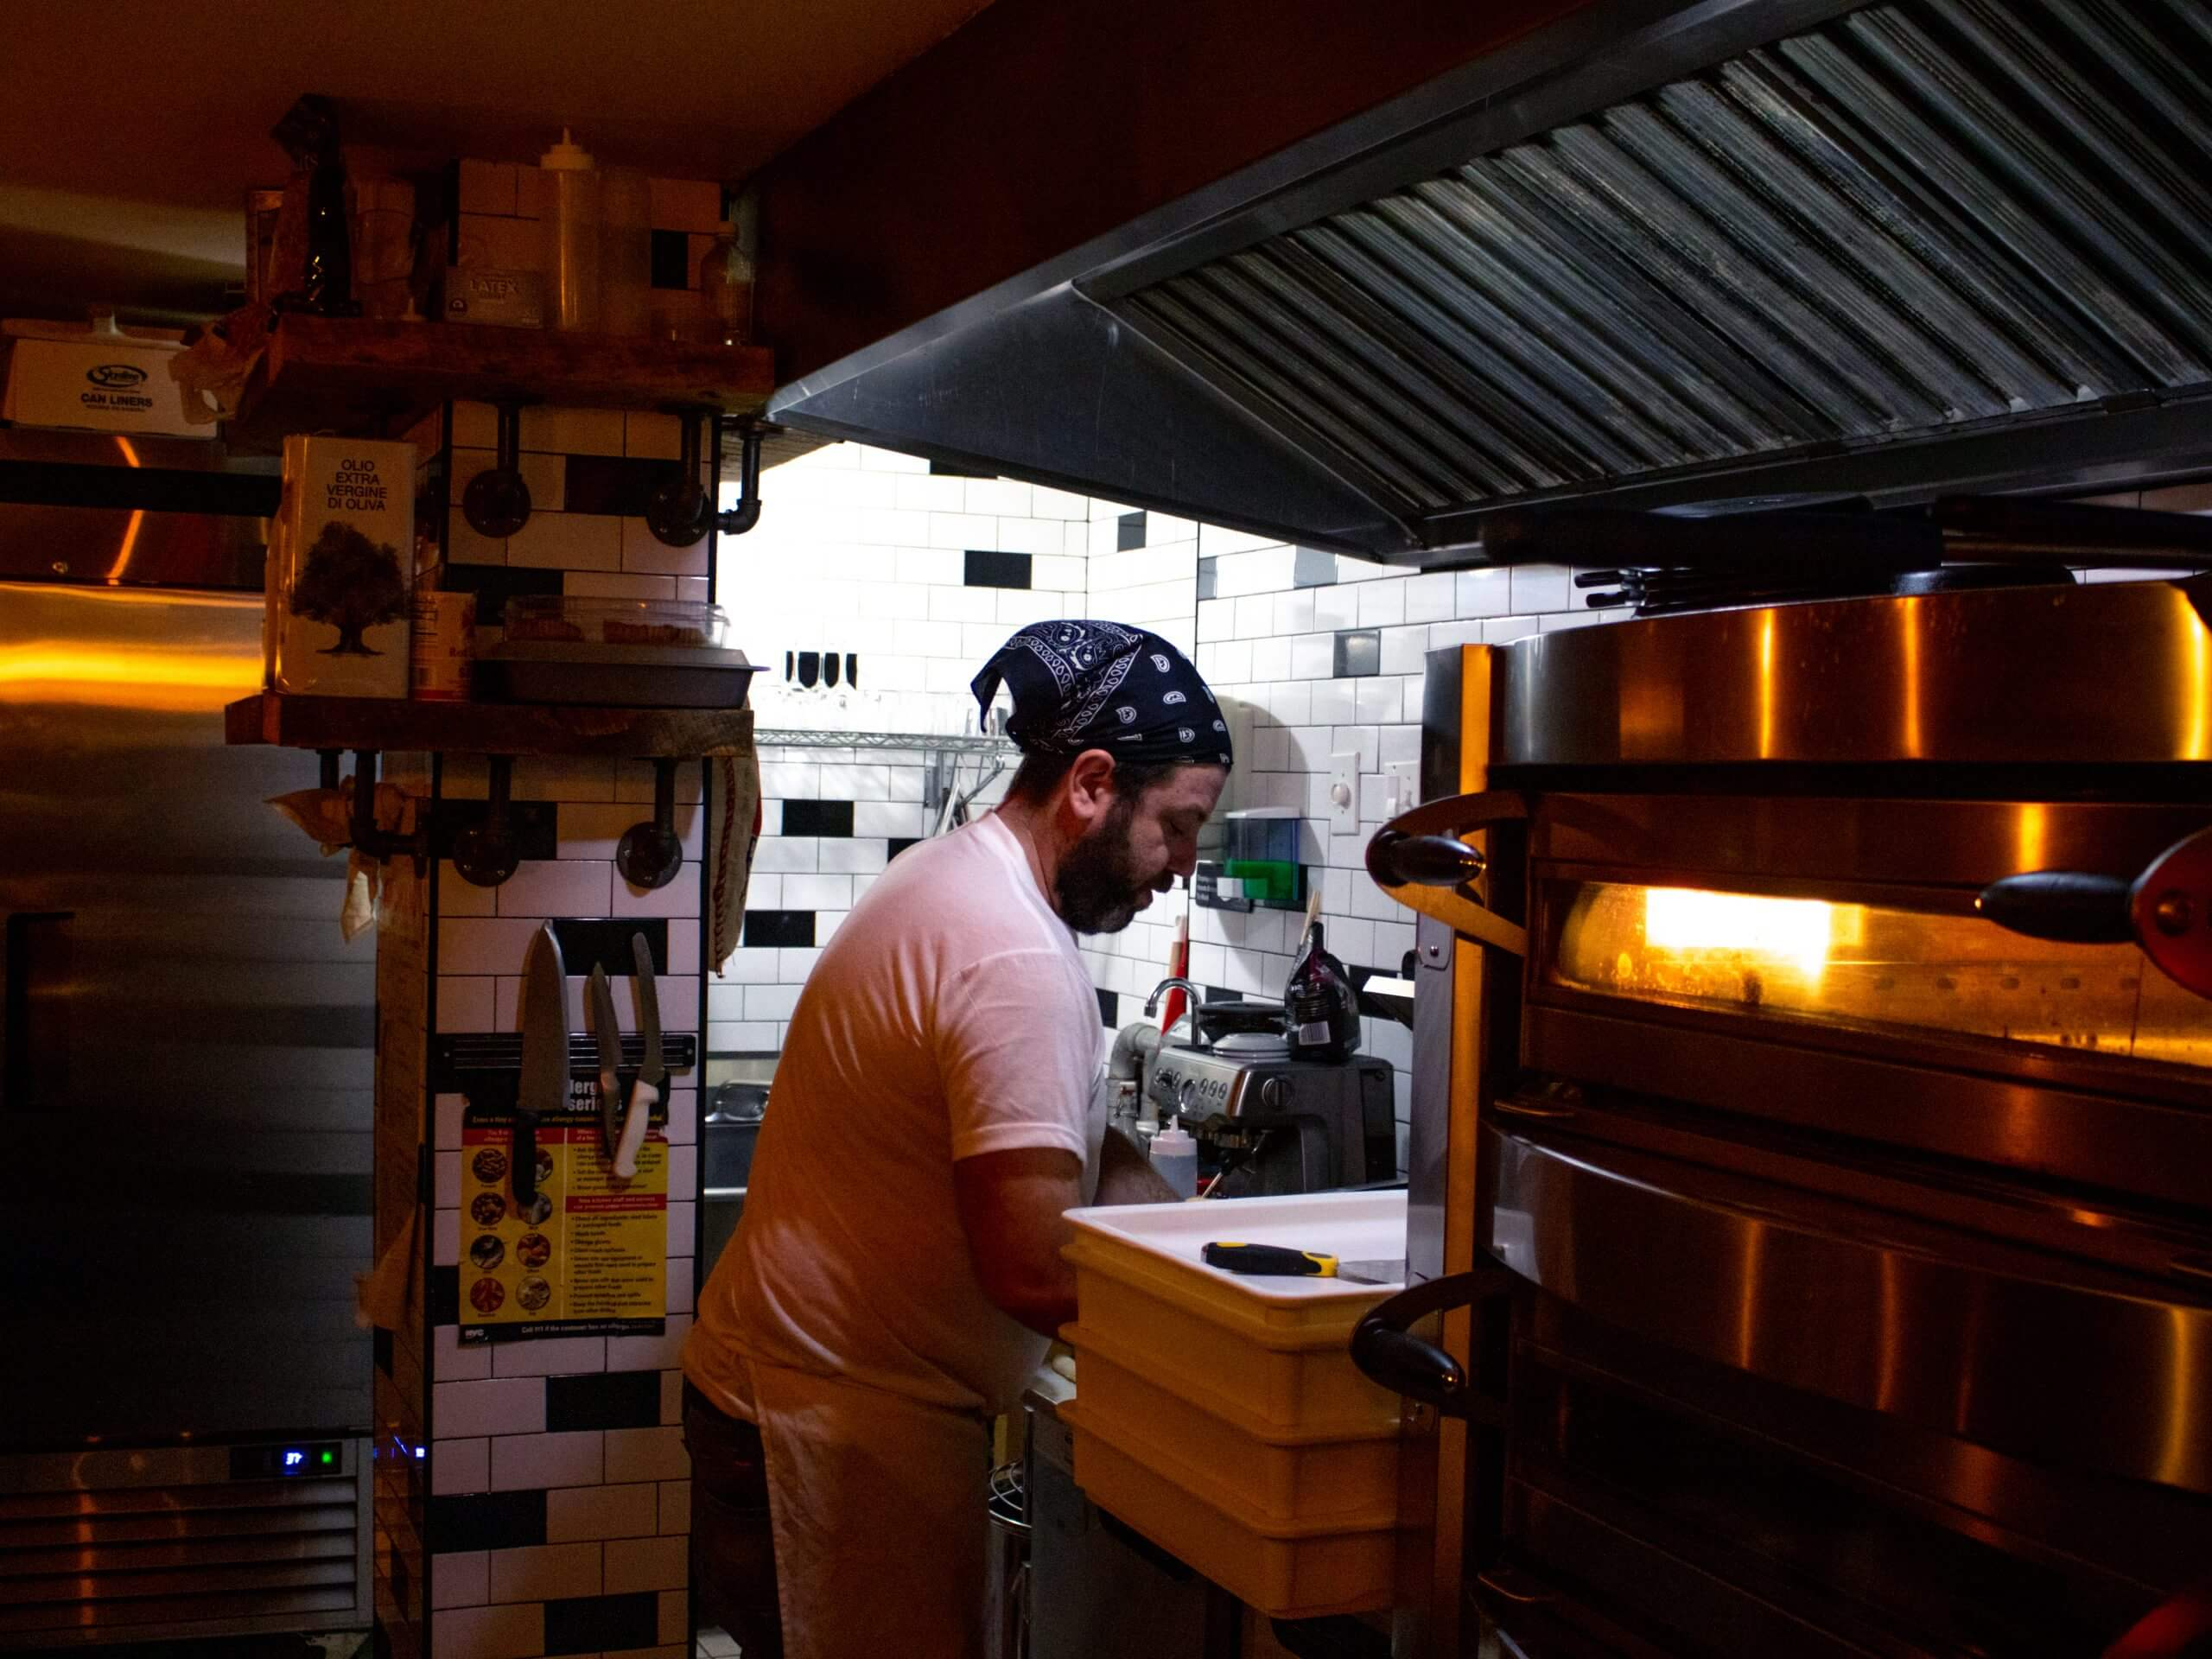 A man standing in his restaurant's kitchen working diligently over a pizza.